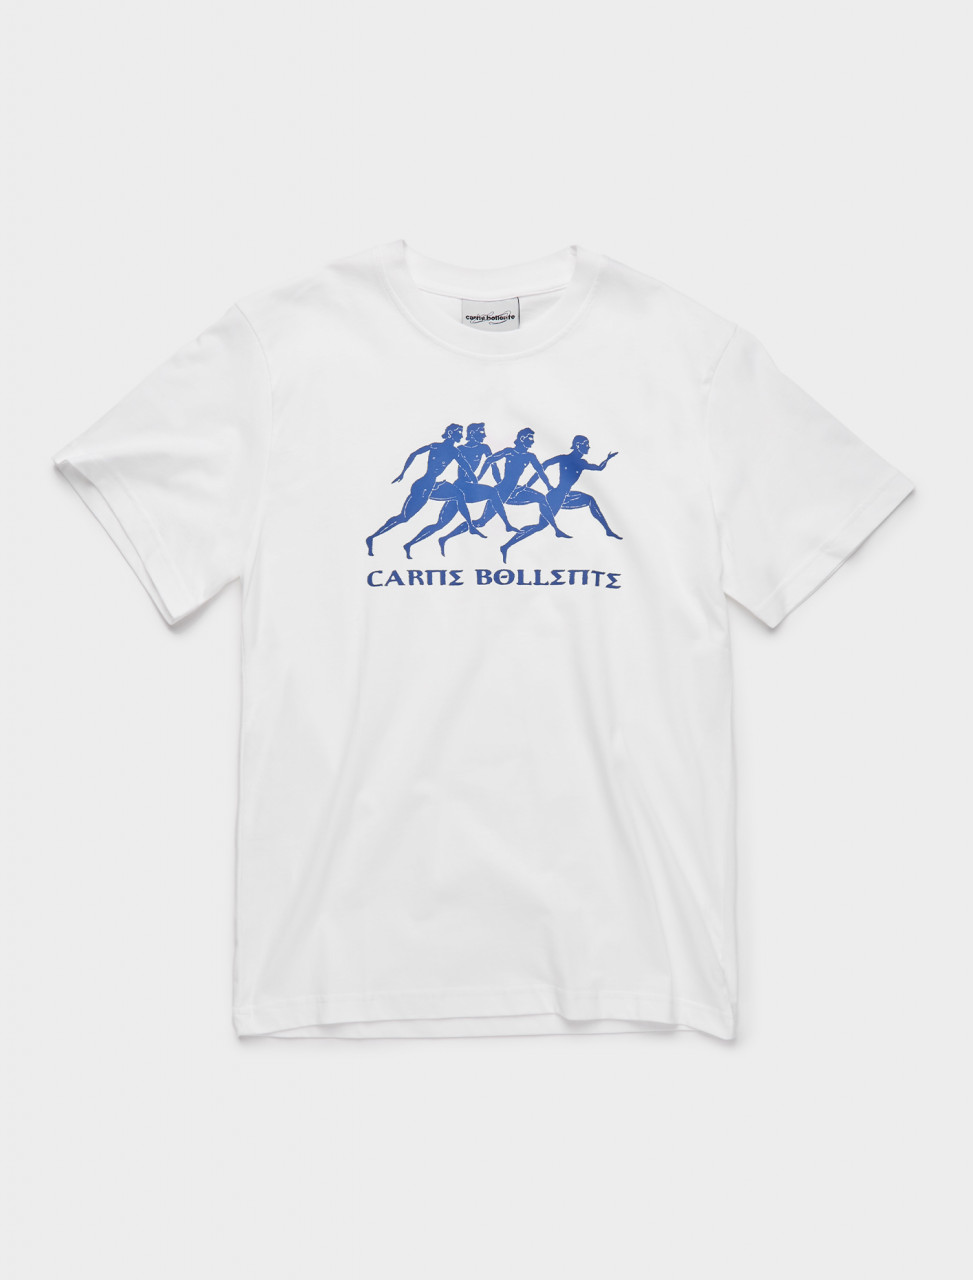 149-AW20TS007 CARNE BOLLENTE JEUX OLYMPIPES T-SHIRT WHITE